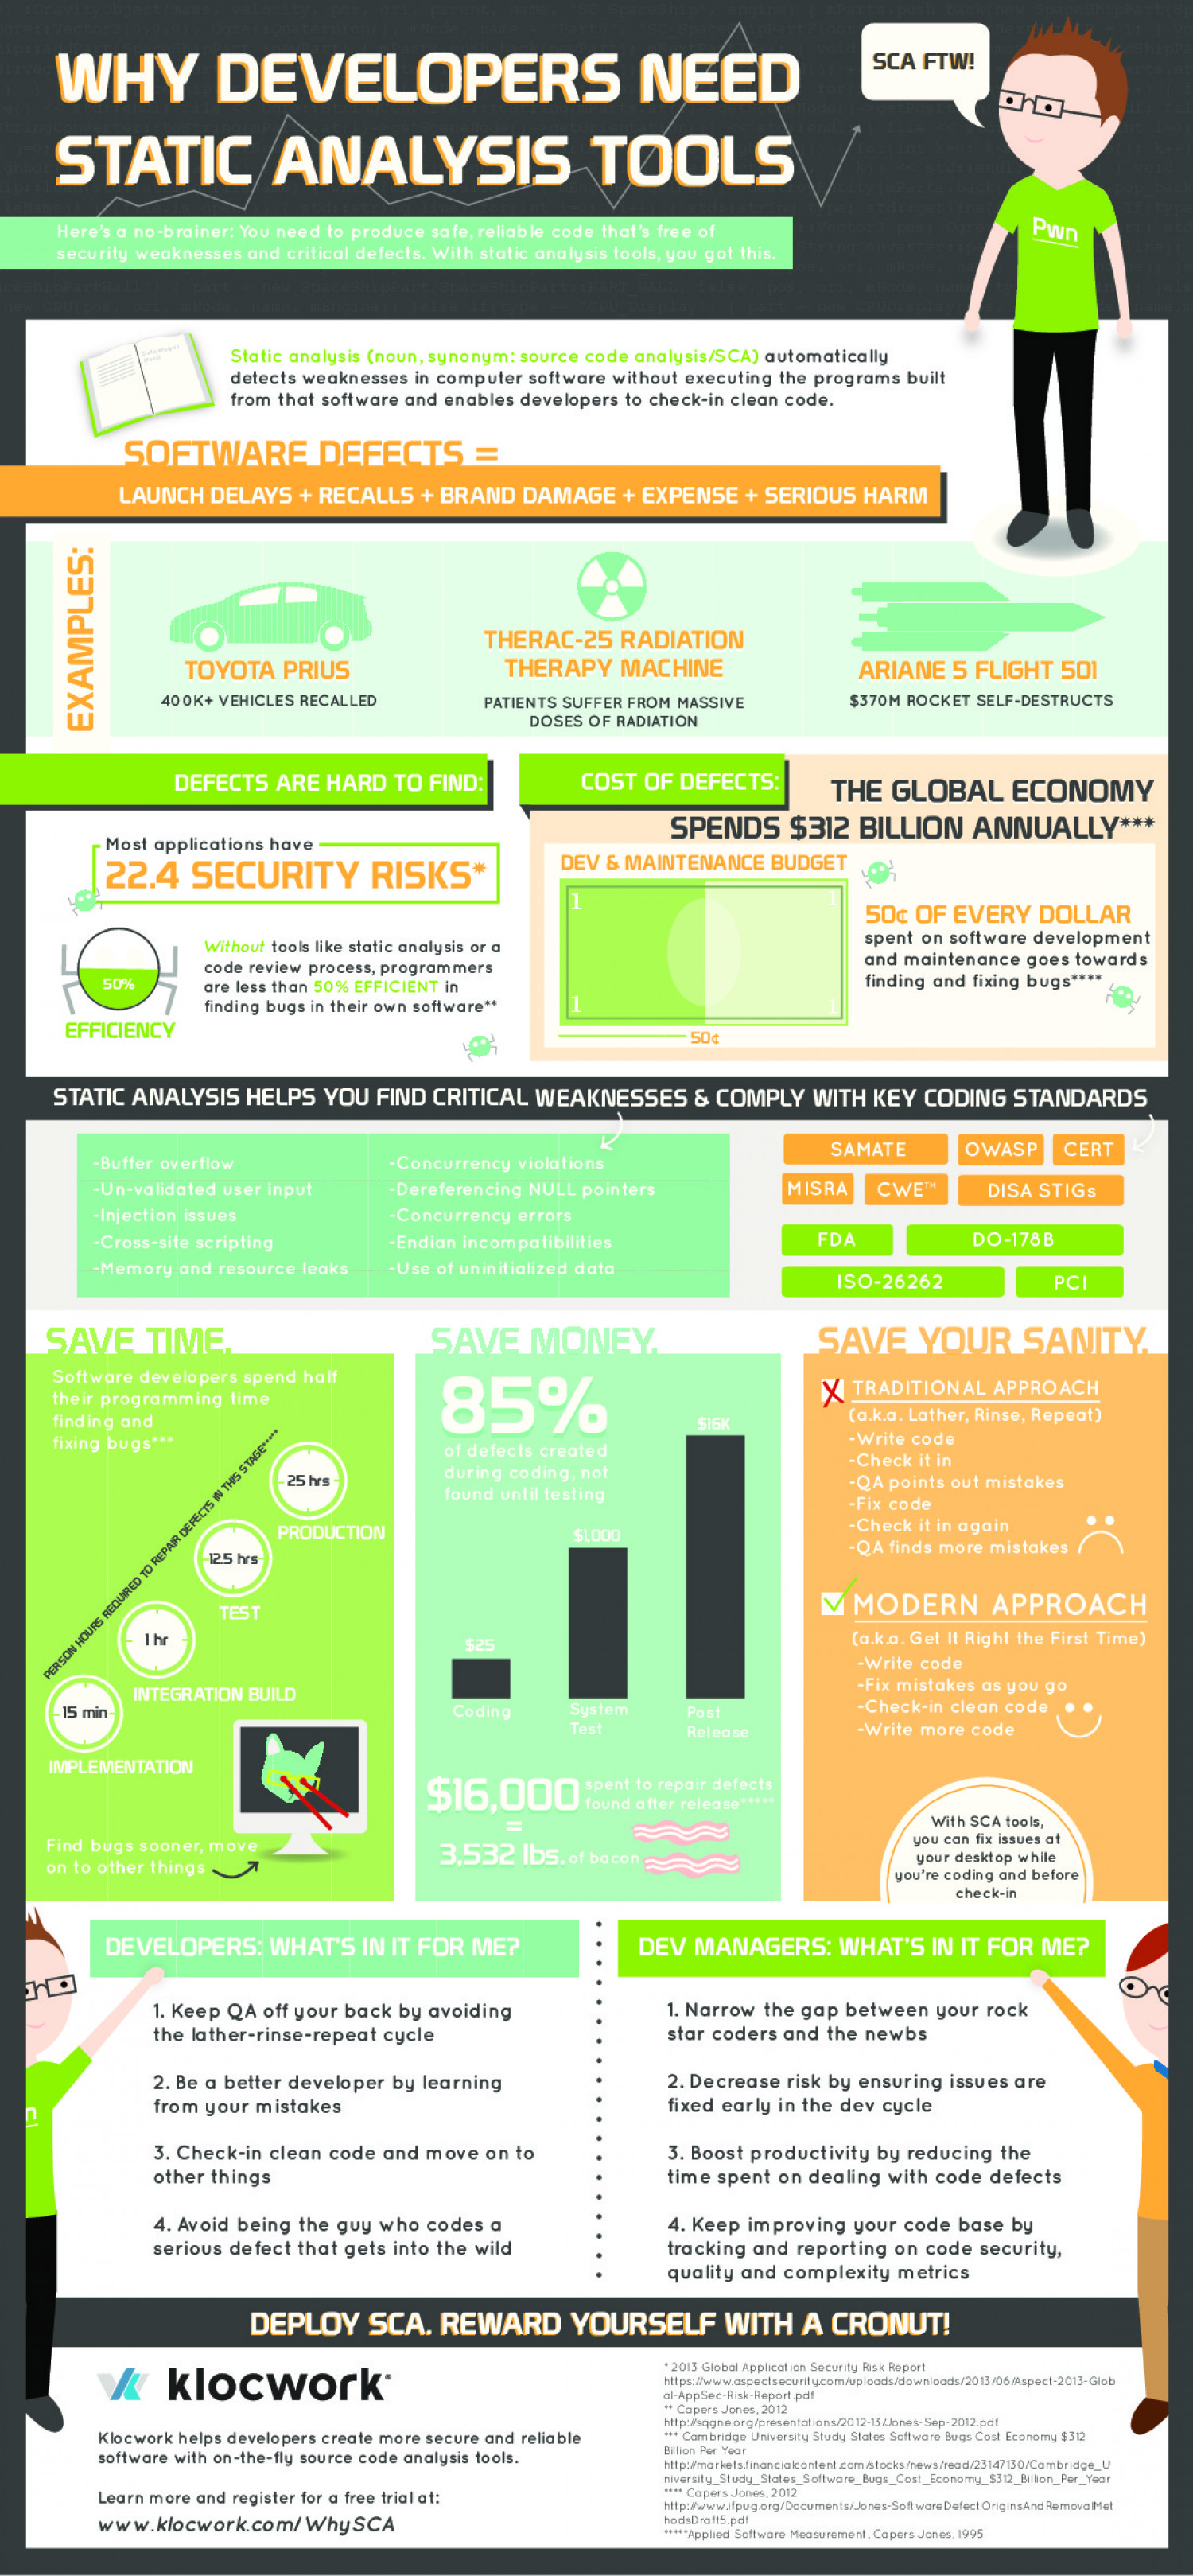 Why Developers Need Static Analysis Tools Infographic